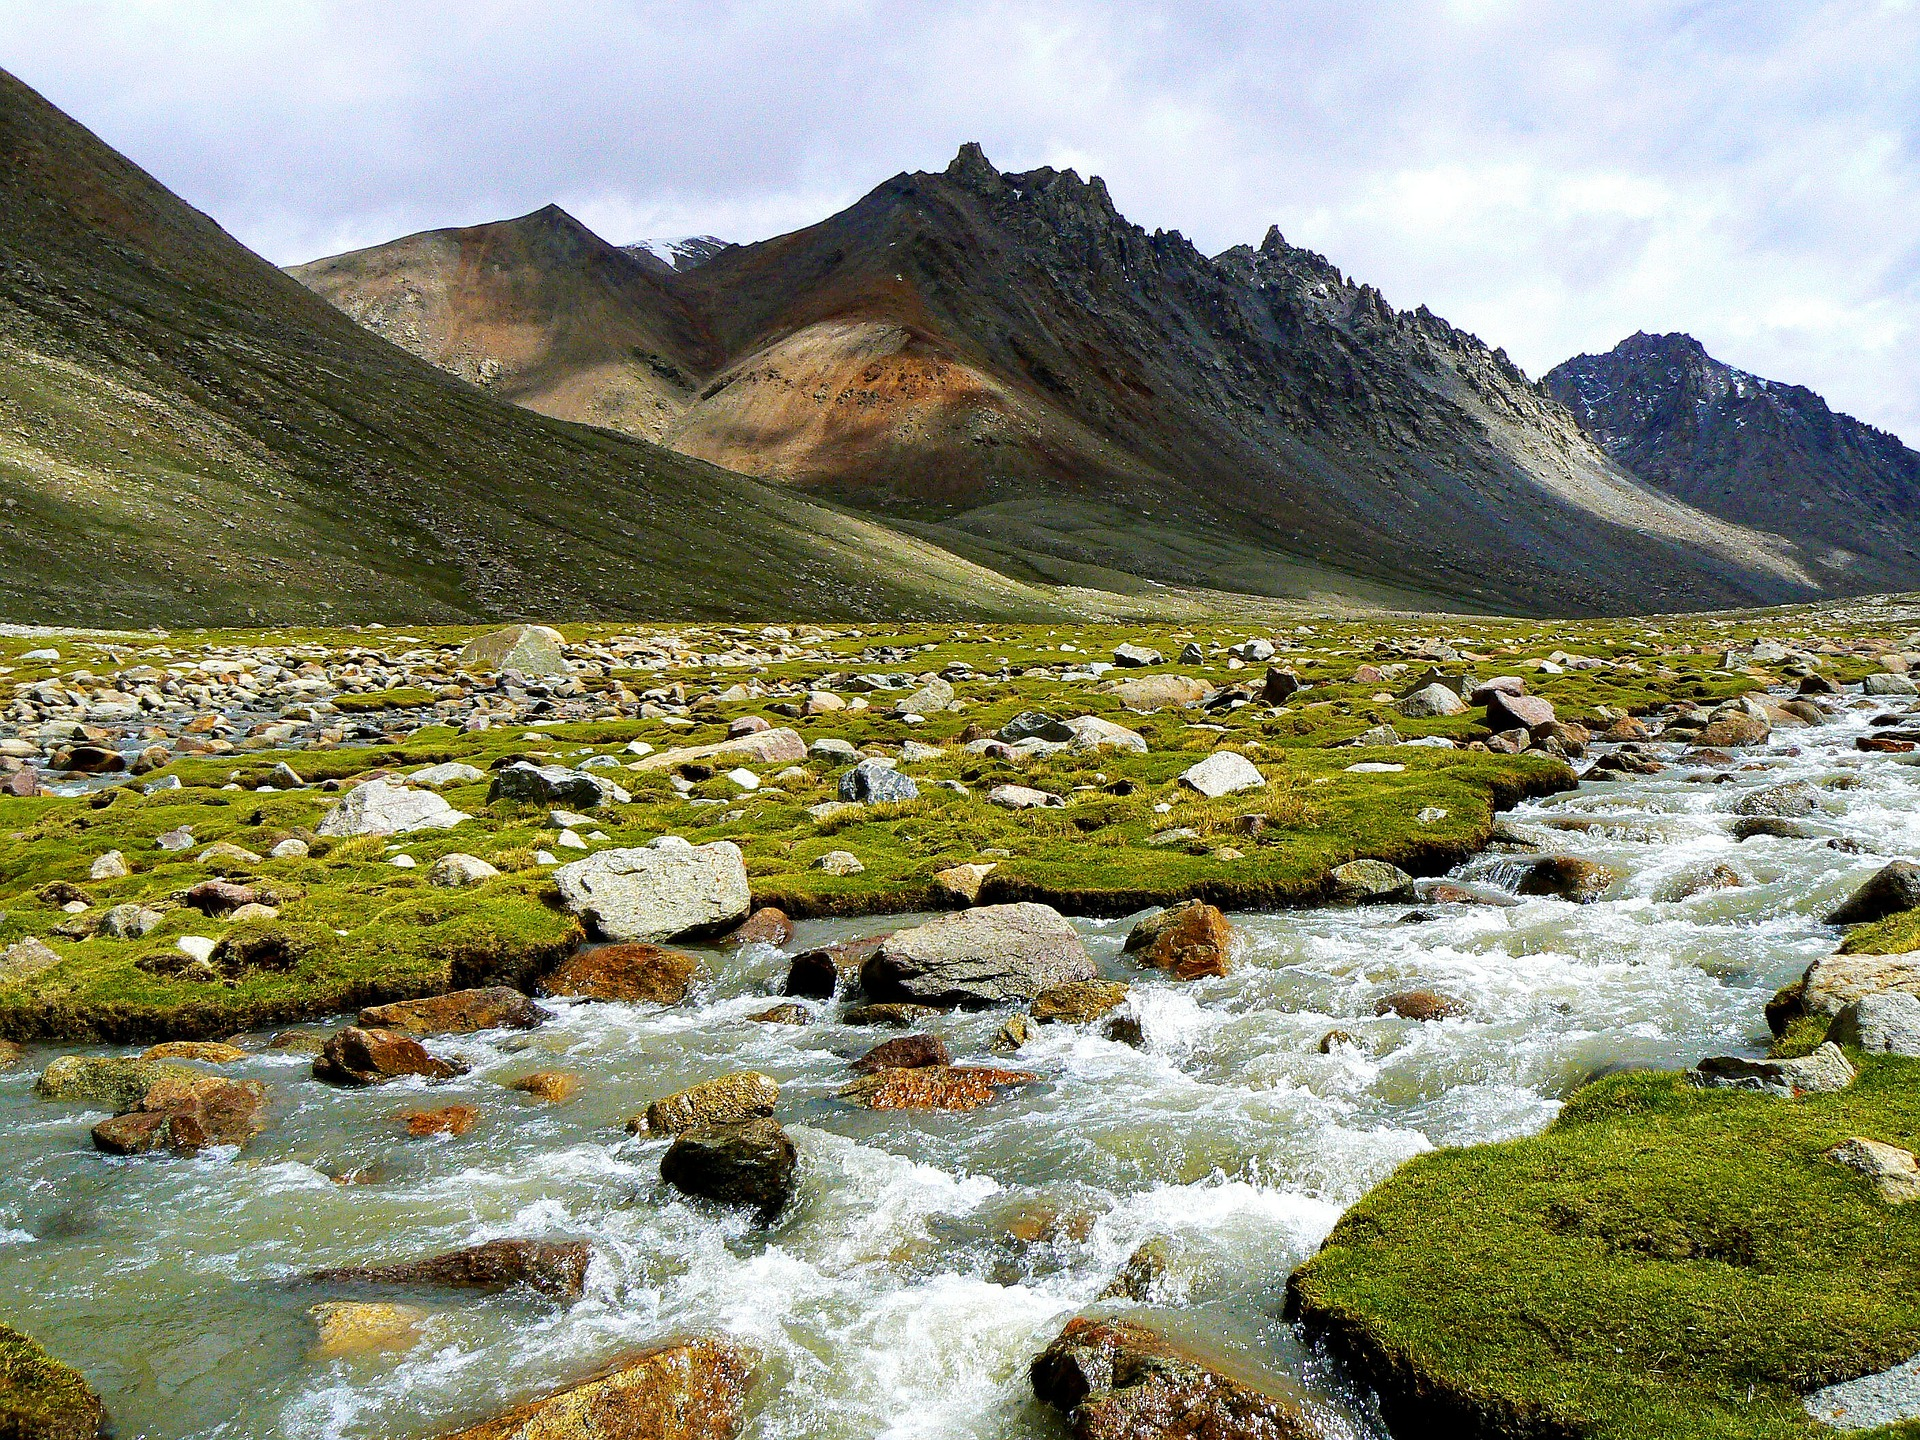 River in the Himalayas